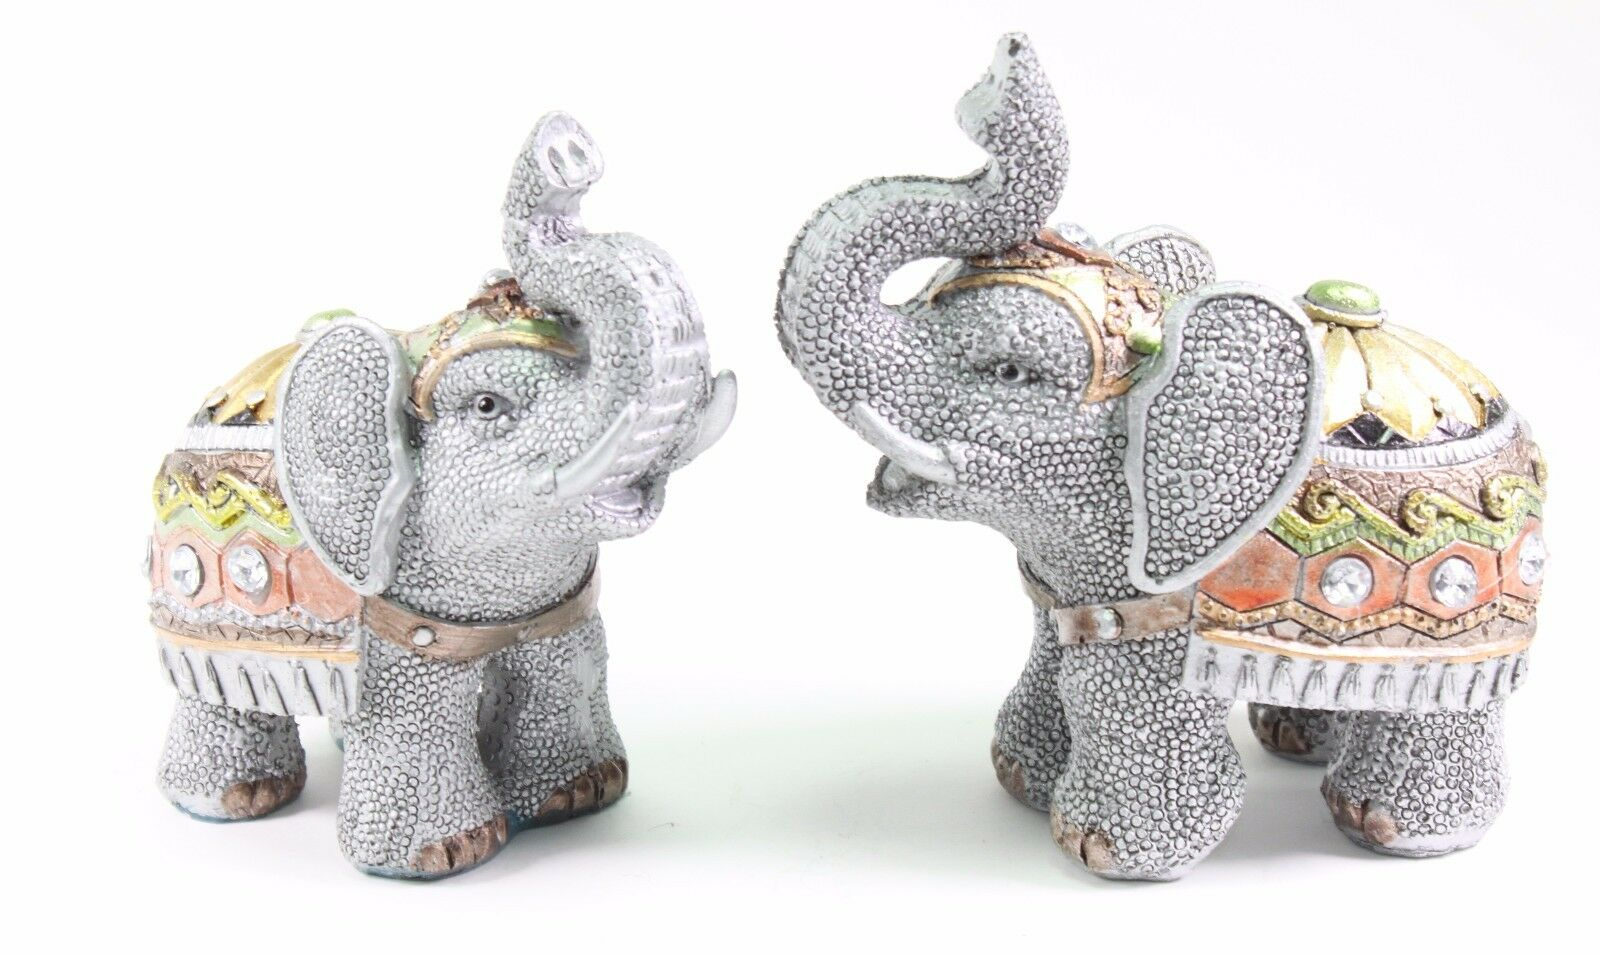 Set of 2 feng shui gray elephants trunk statue lucky figurine gift home decor ebay Elephant home decor items